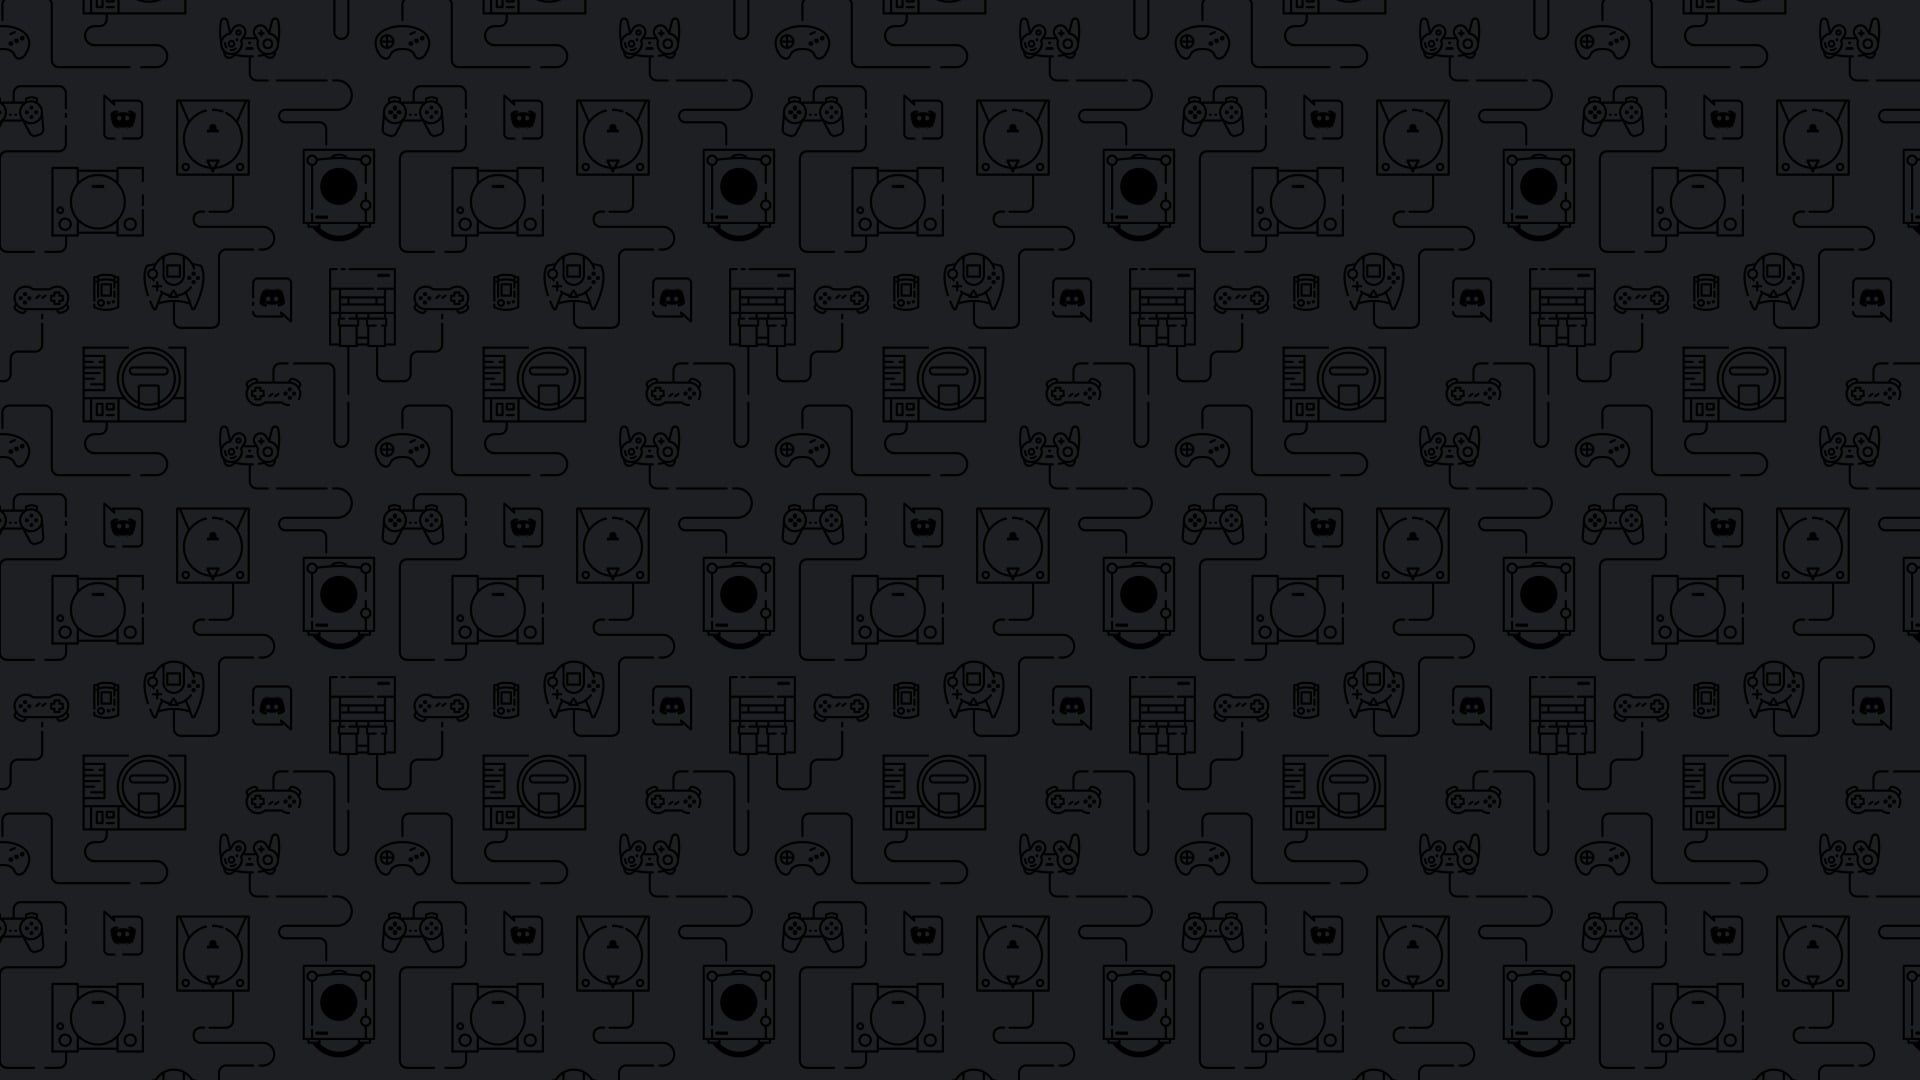 Game Console And Controller Digital Wallpaper Discord 1080p Wallpaper Hdwallpaper Desktop Digital Wallpaper Game Console Console